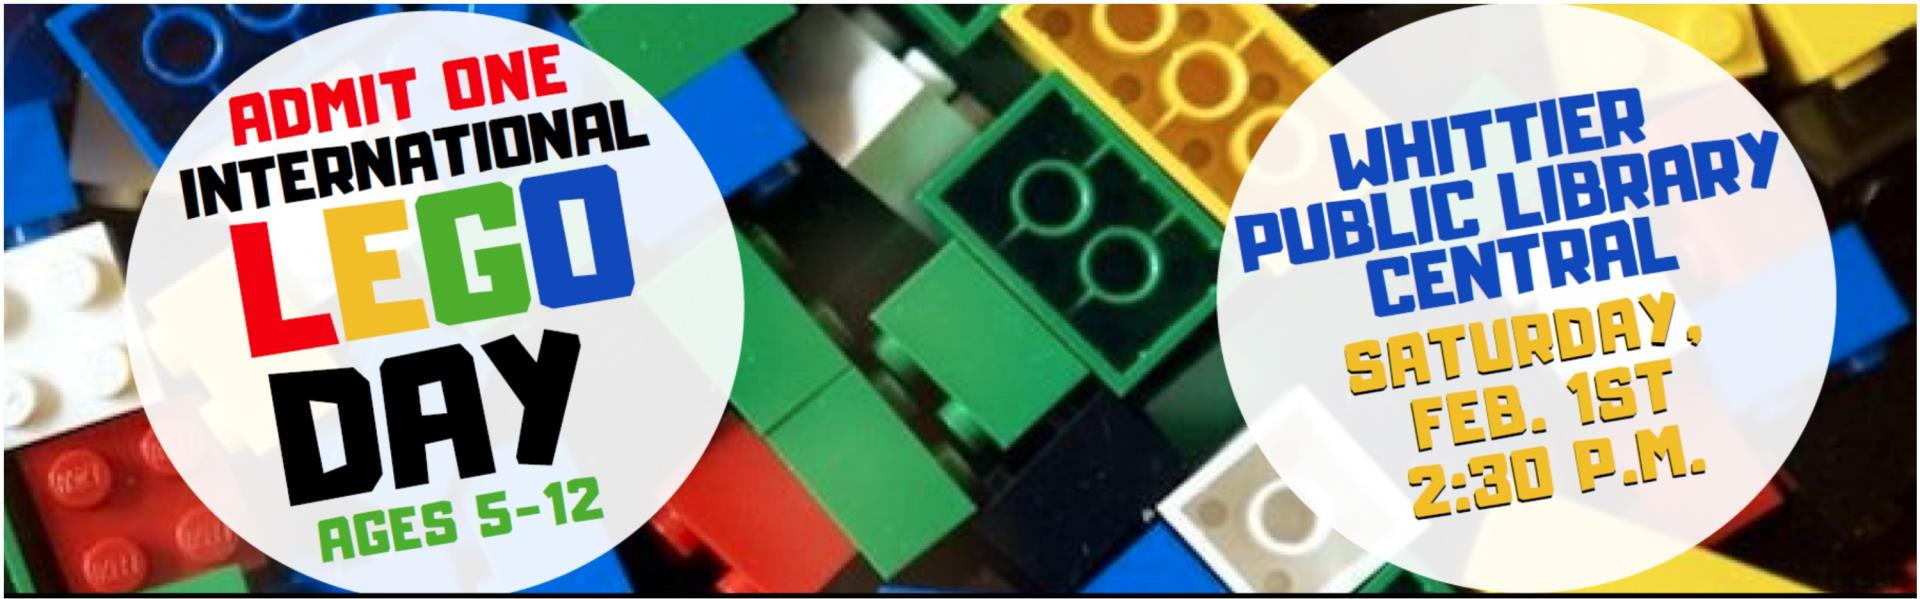 Lego International Day  Ages 5-12 Whittier Public Library Central Saturday Feb. 1st. @ 2:30 p.m. image of LEGOS